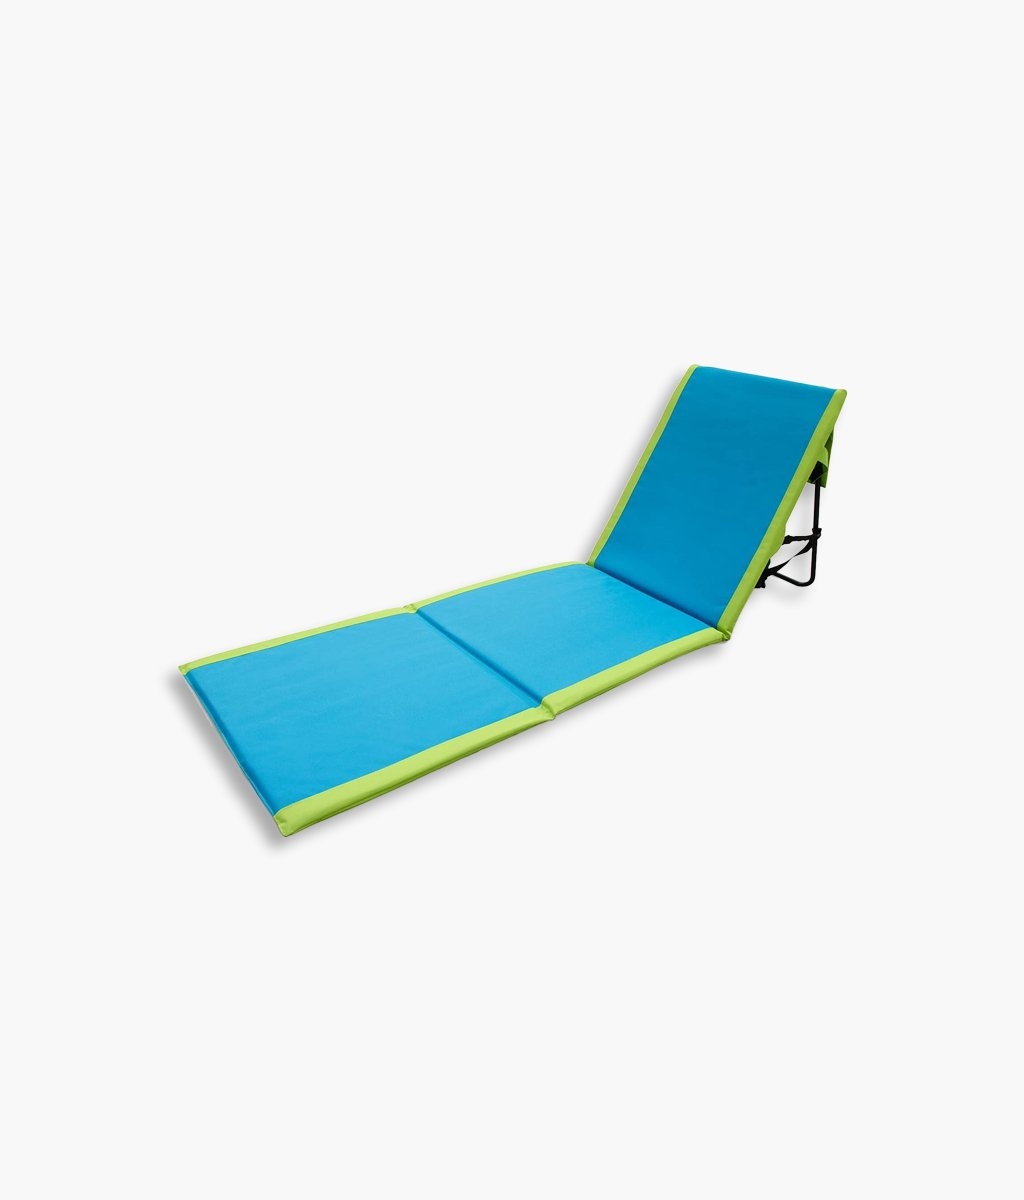 China Wholesale Cooler Bag Factory –  Portable Beach Mat & Chair – Kinghow